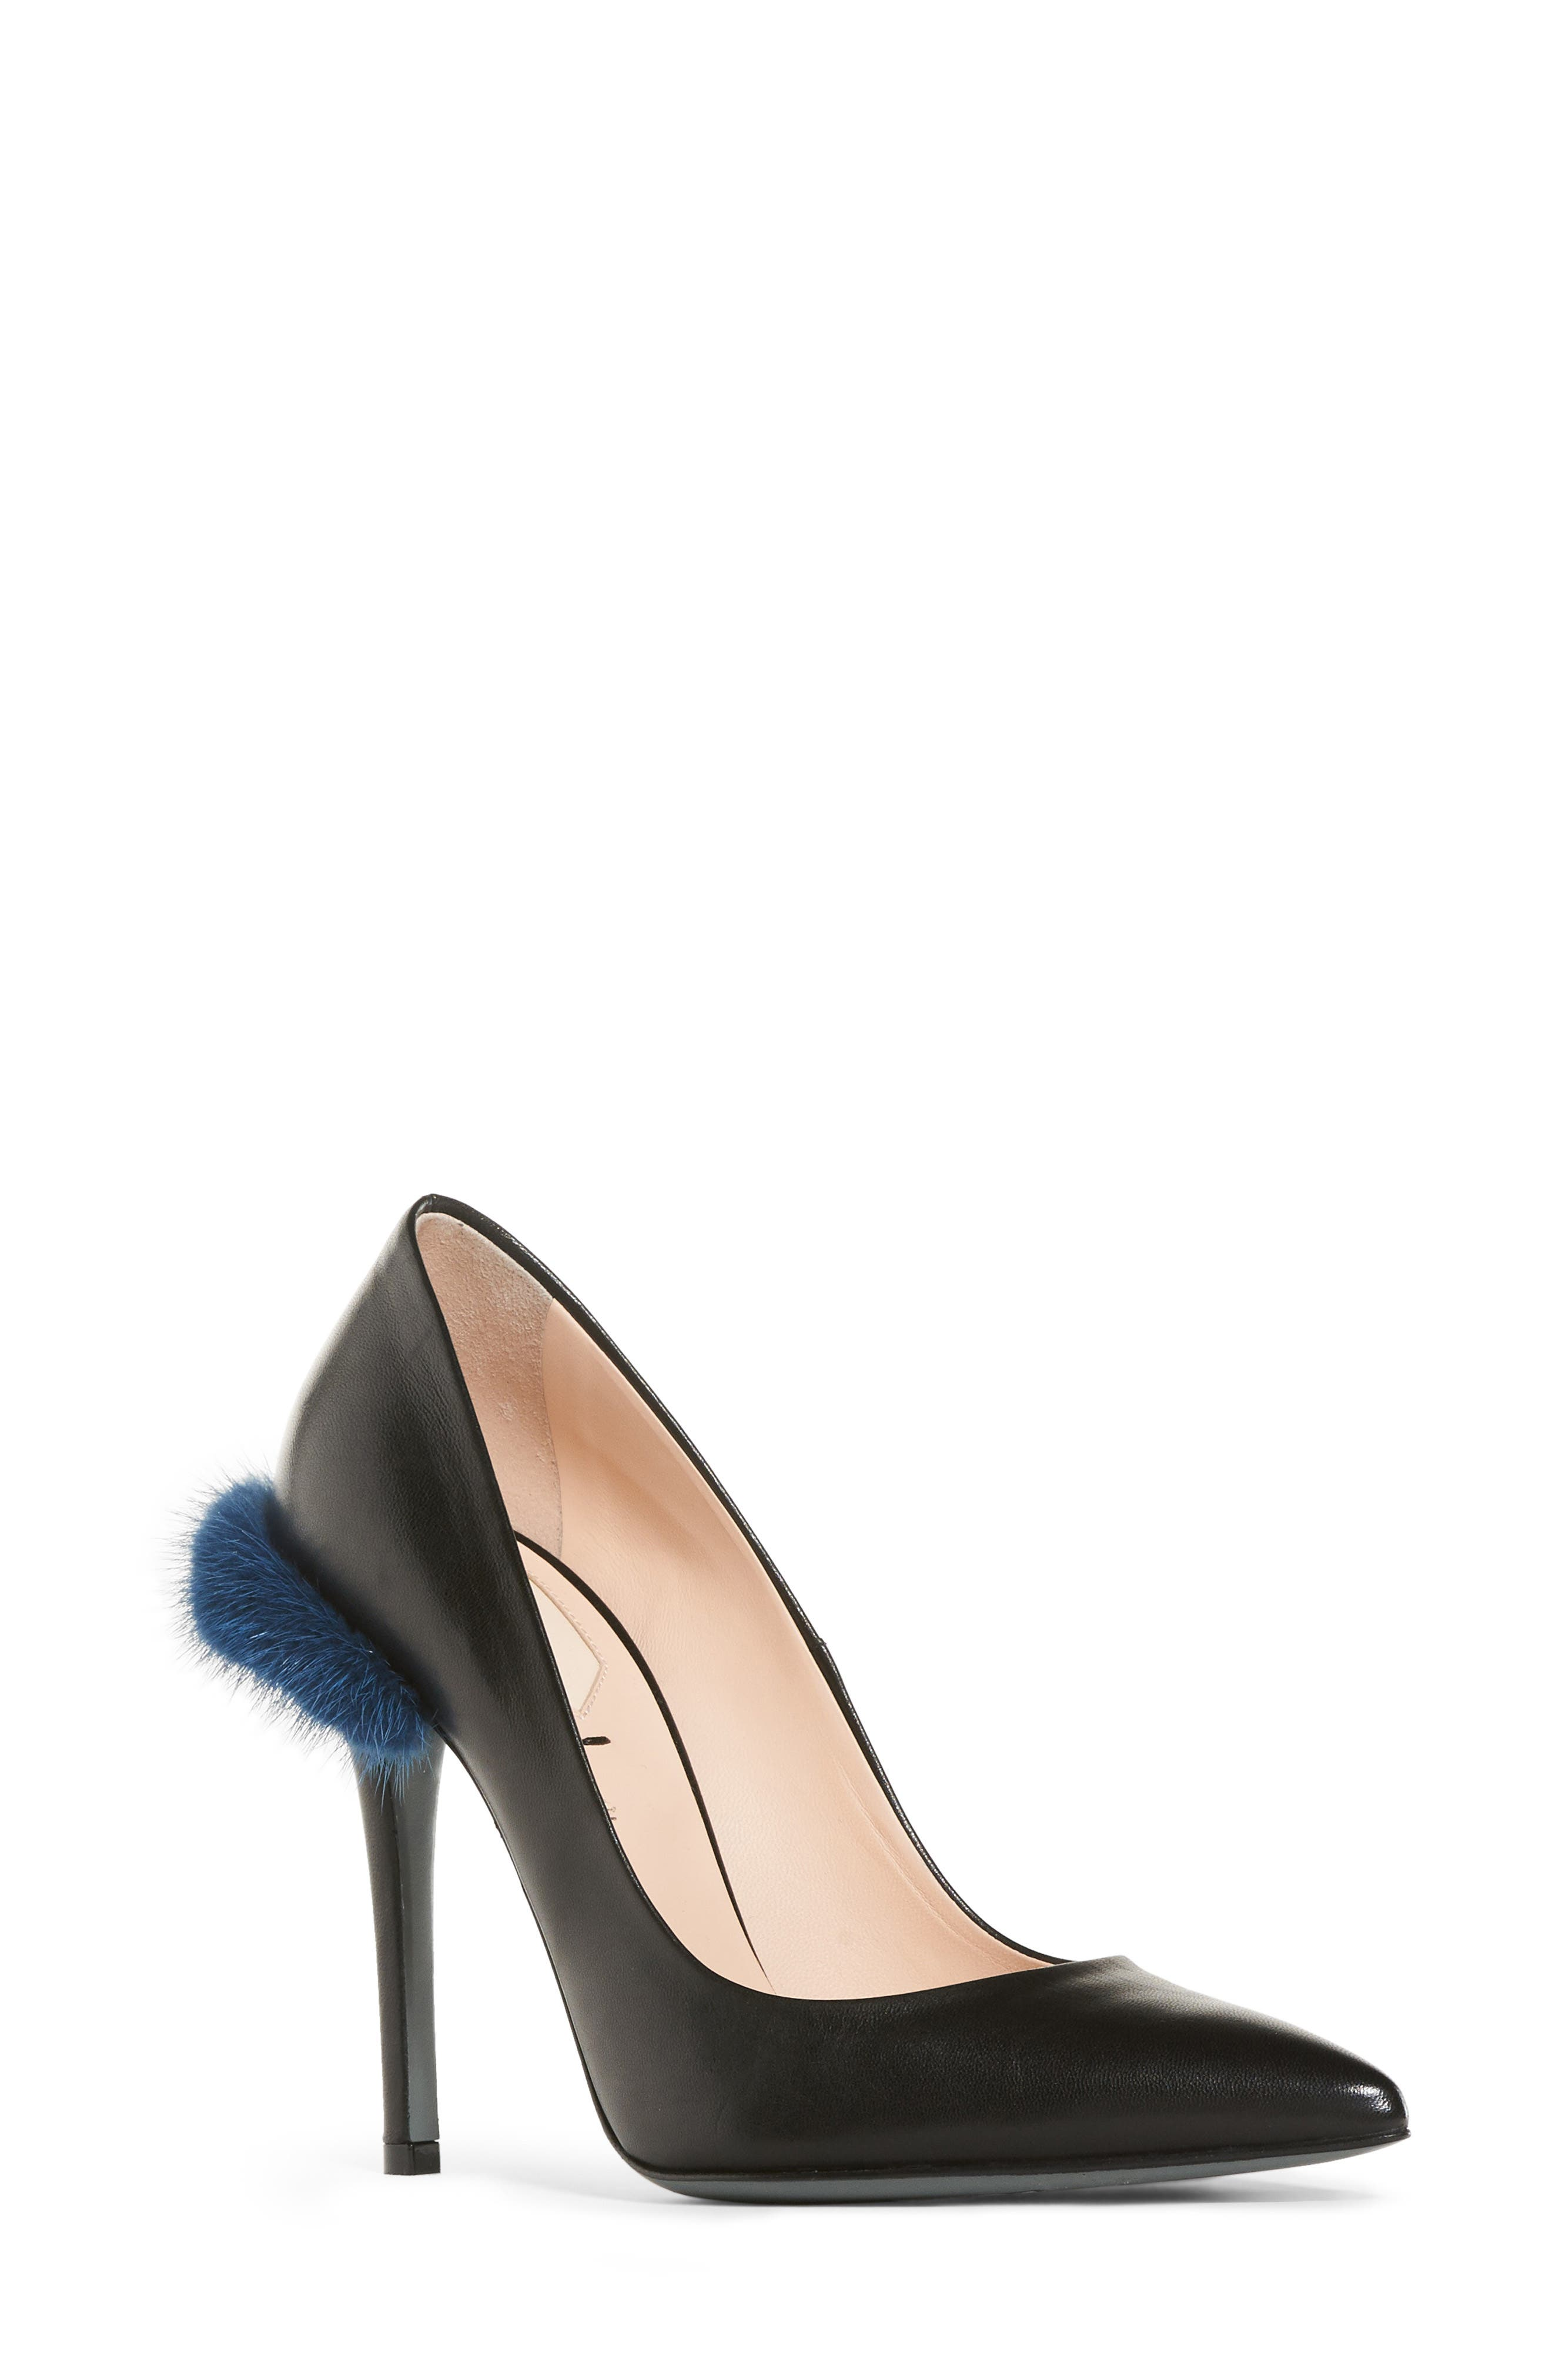 Duo Pointy Toe Pump with Genuine Mink Trim,                             Main thumbnail 1, color,                             009